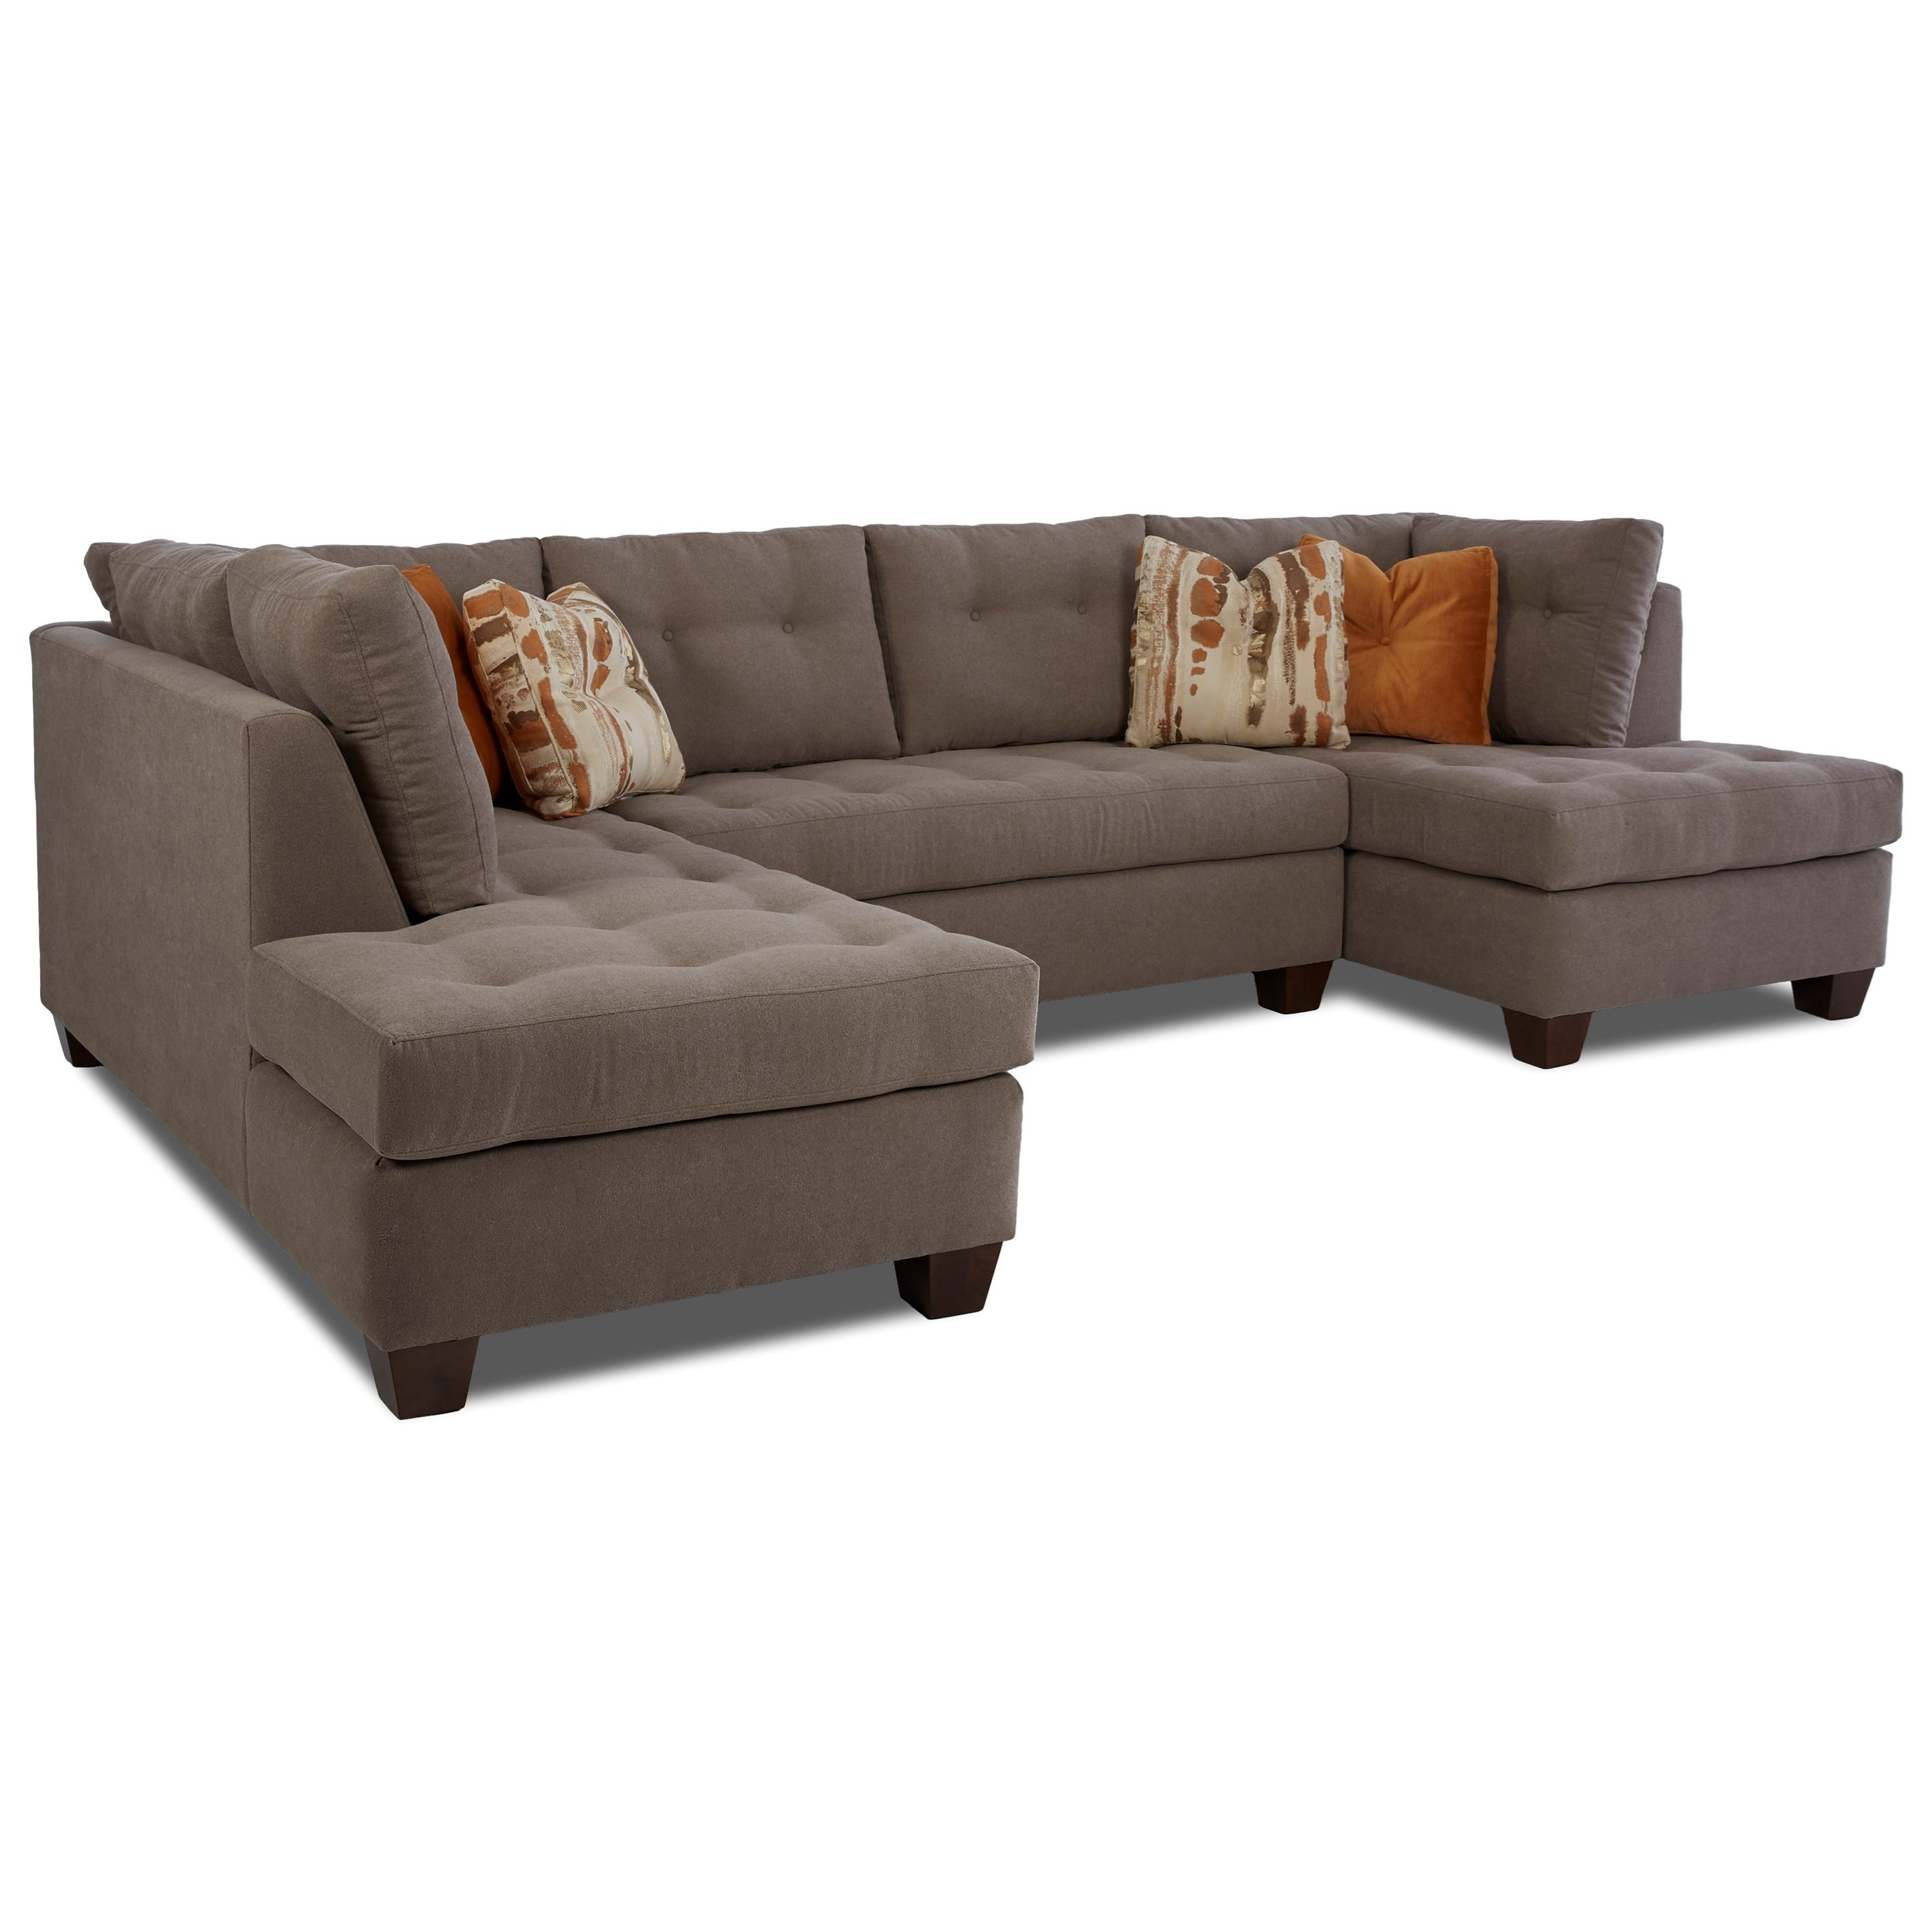 Klaussner Barton 3-Piece Sectional - Item Number: K39400-LSCHS+ALS+RCHASE